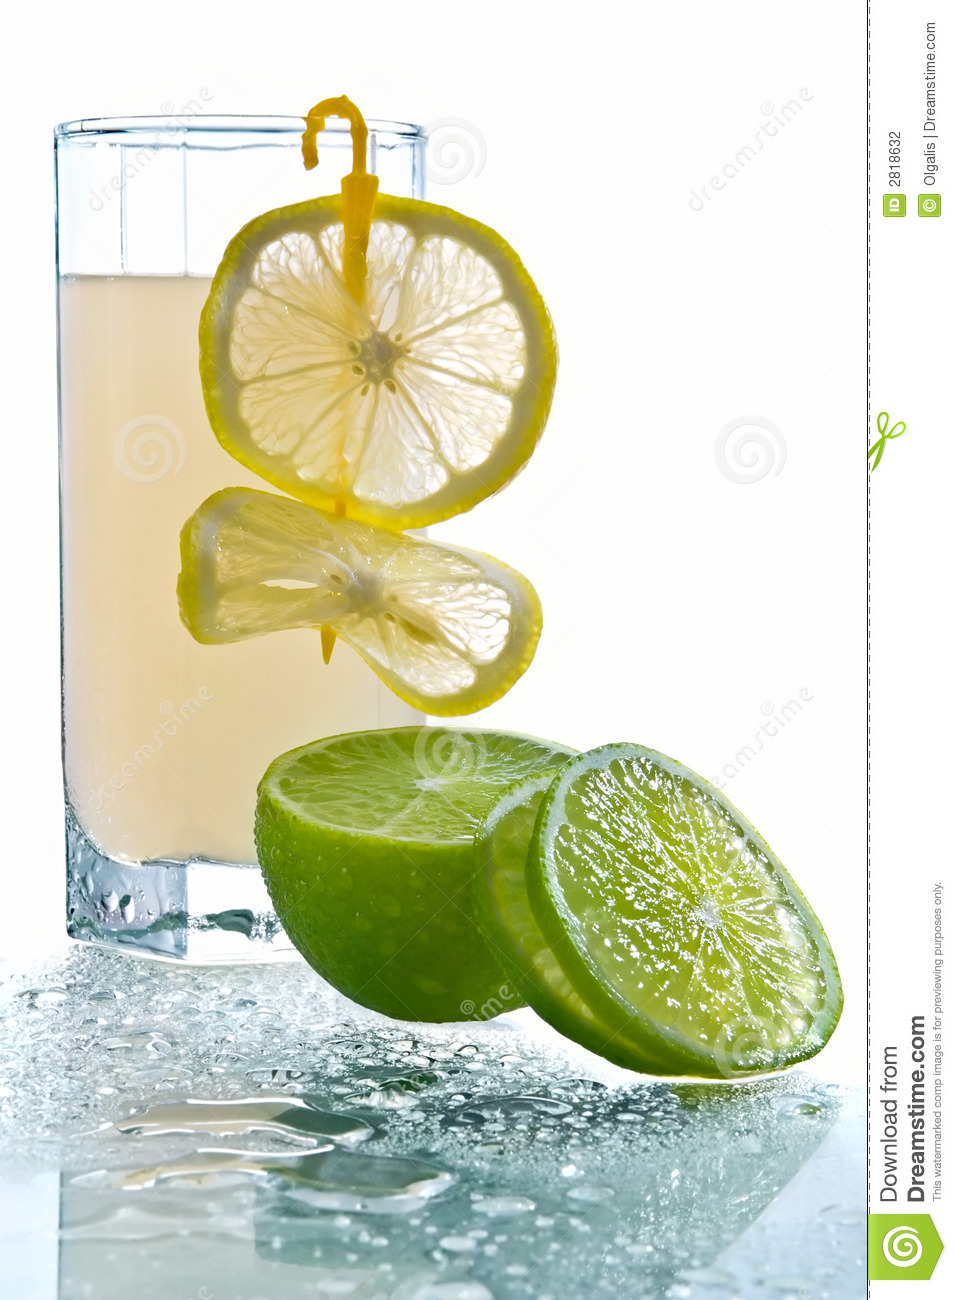 Glass of lemonade in an environment of fresh lemon decoration and lime